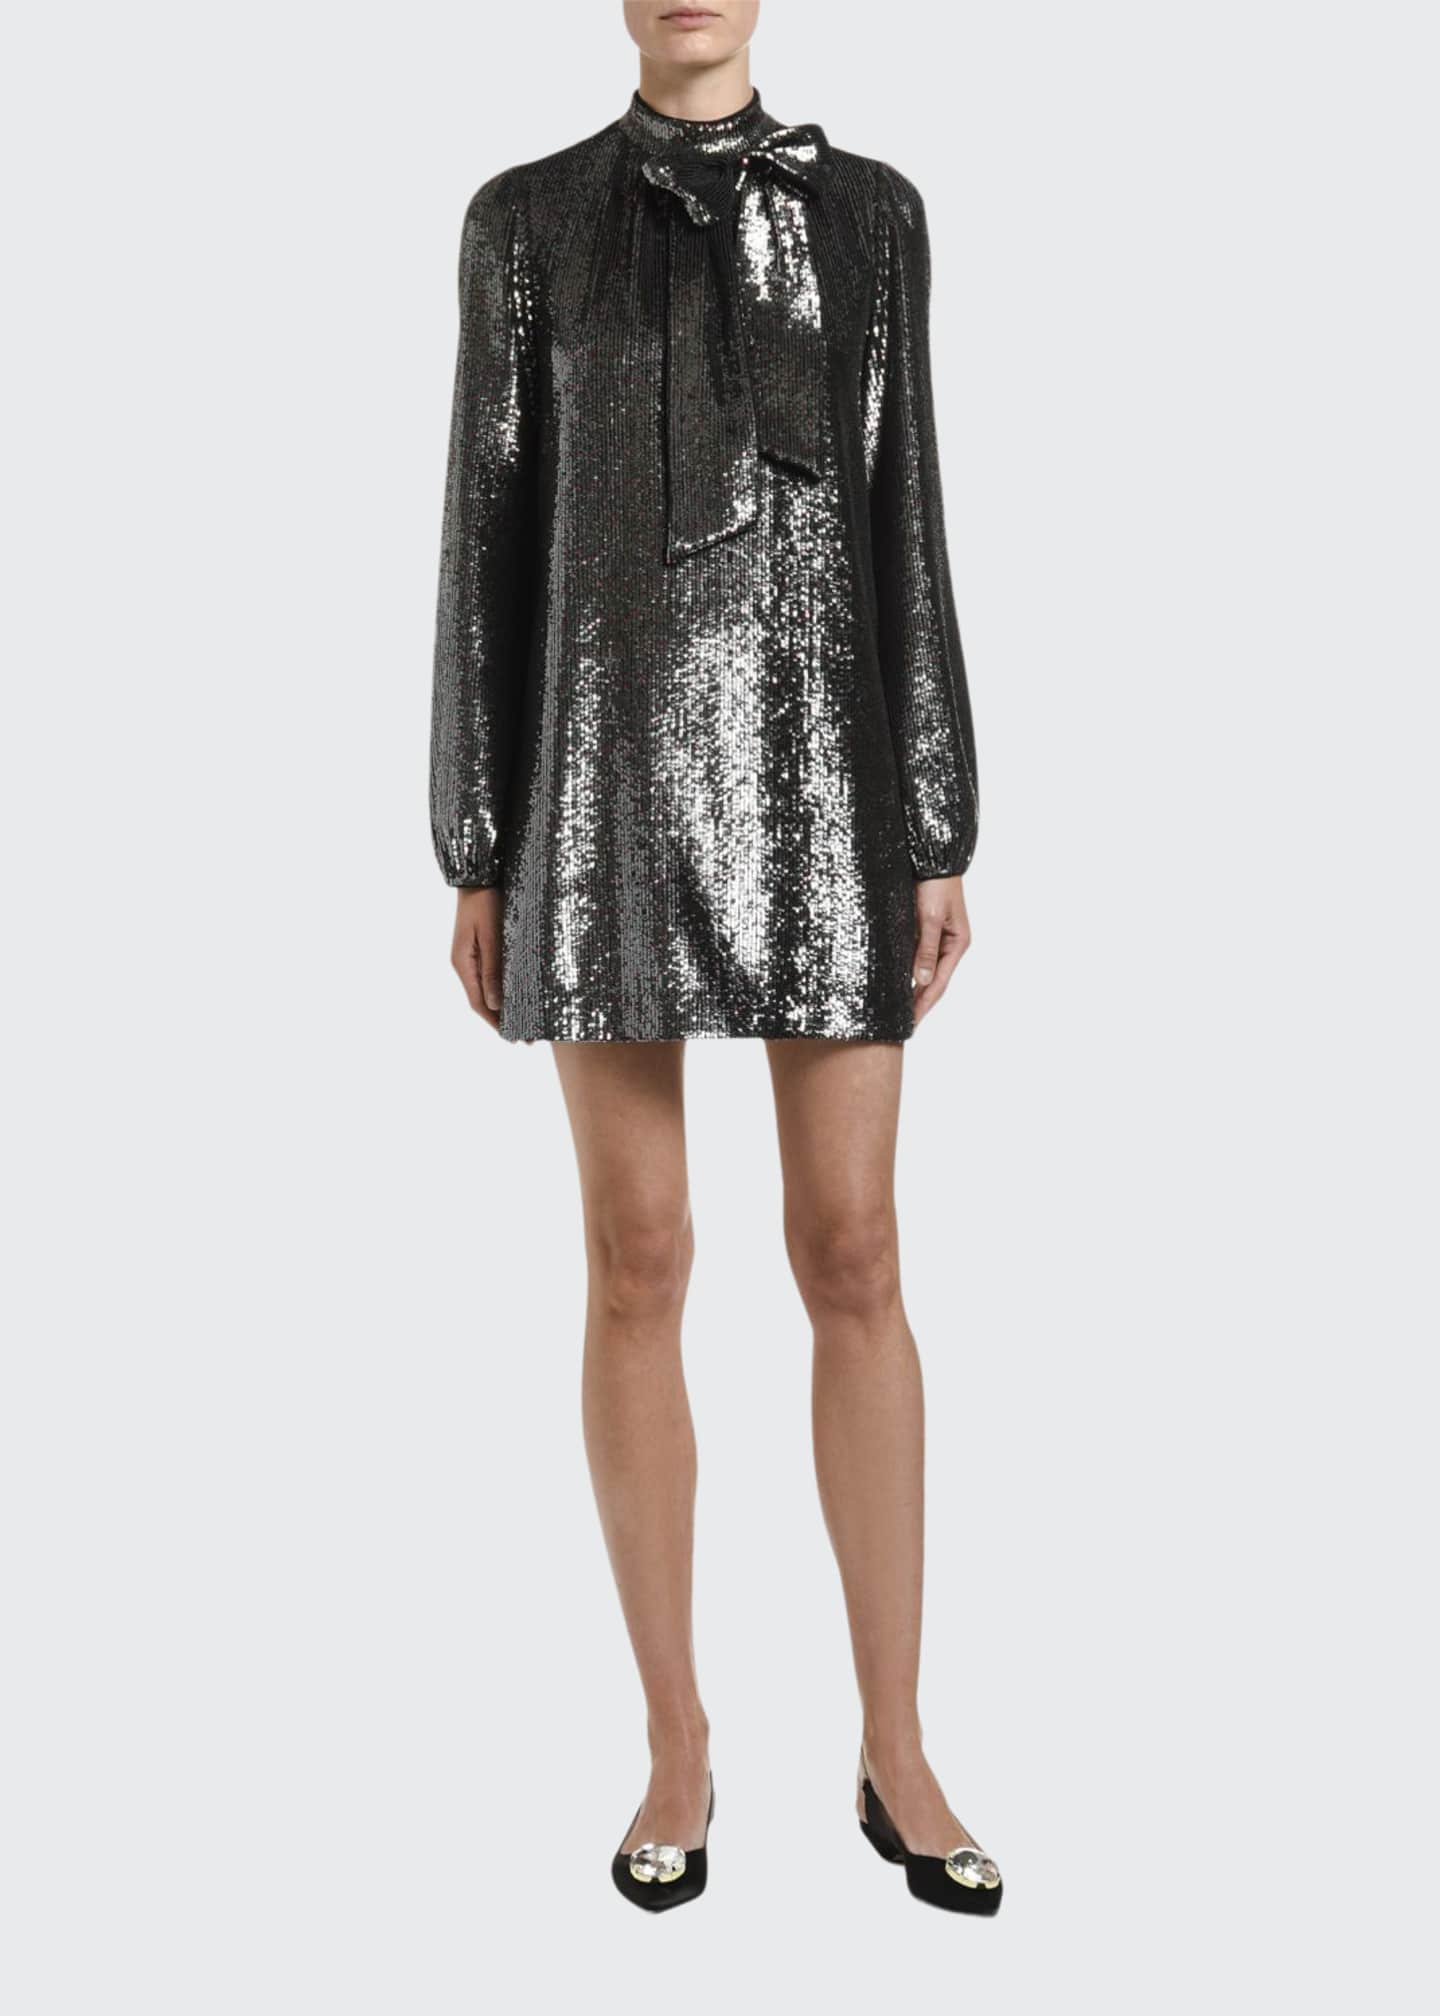 No. 21 Sequined Long-Sleeve High-Neck Dress w/ Bow